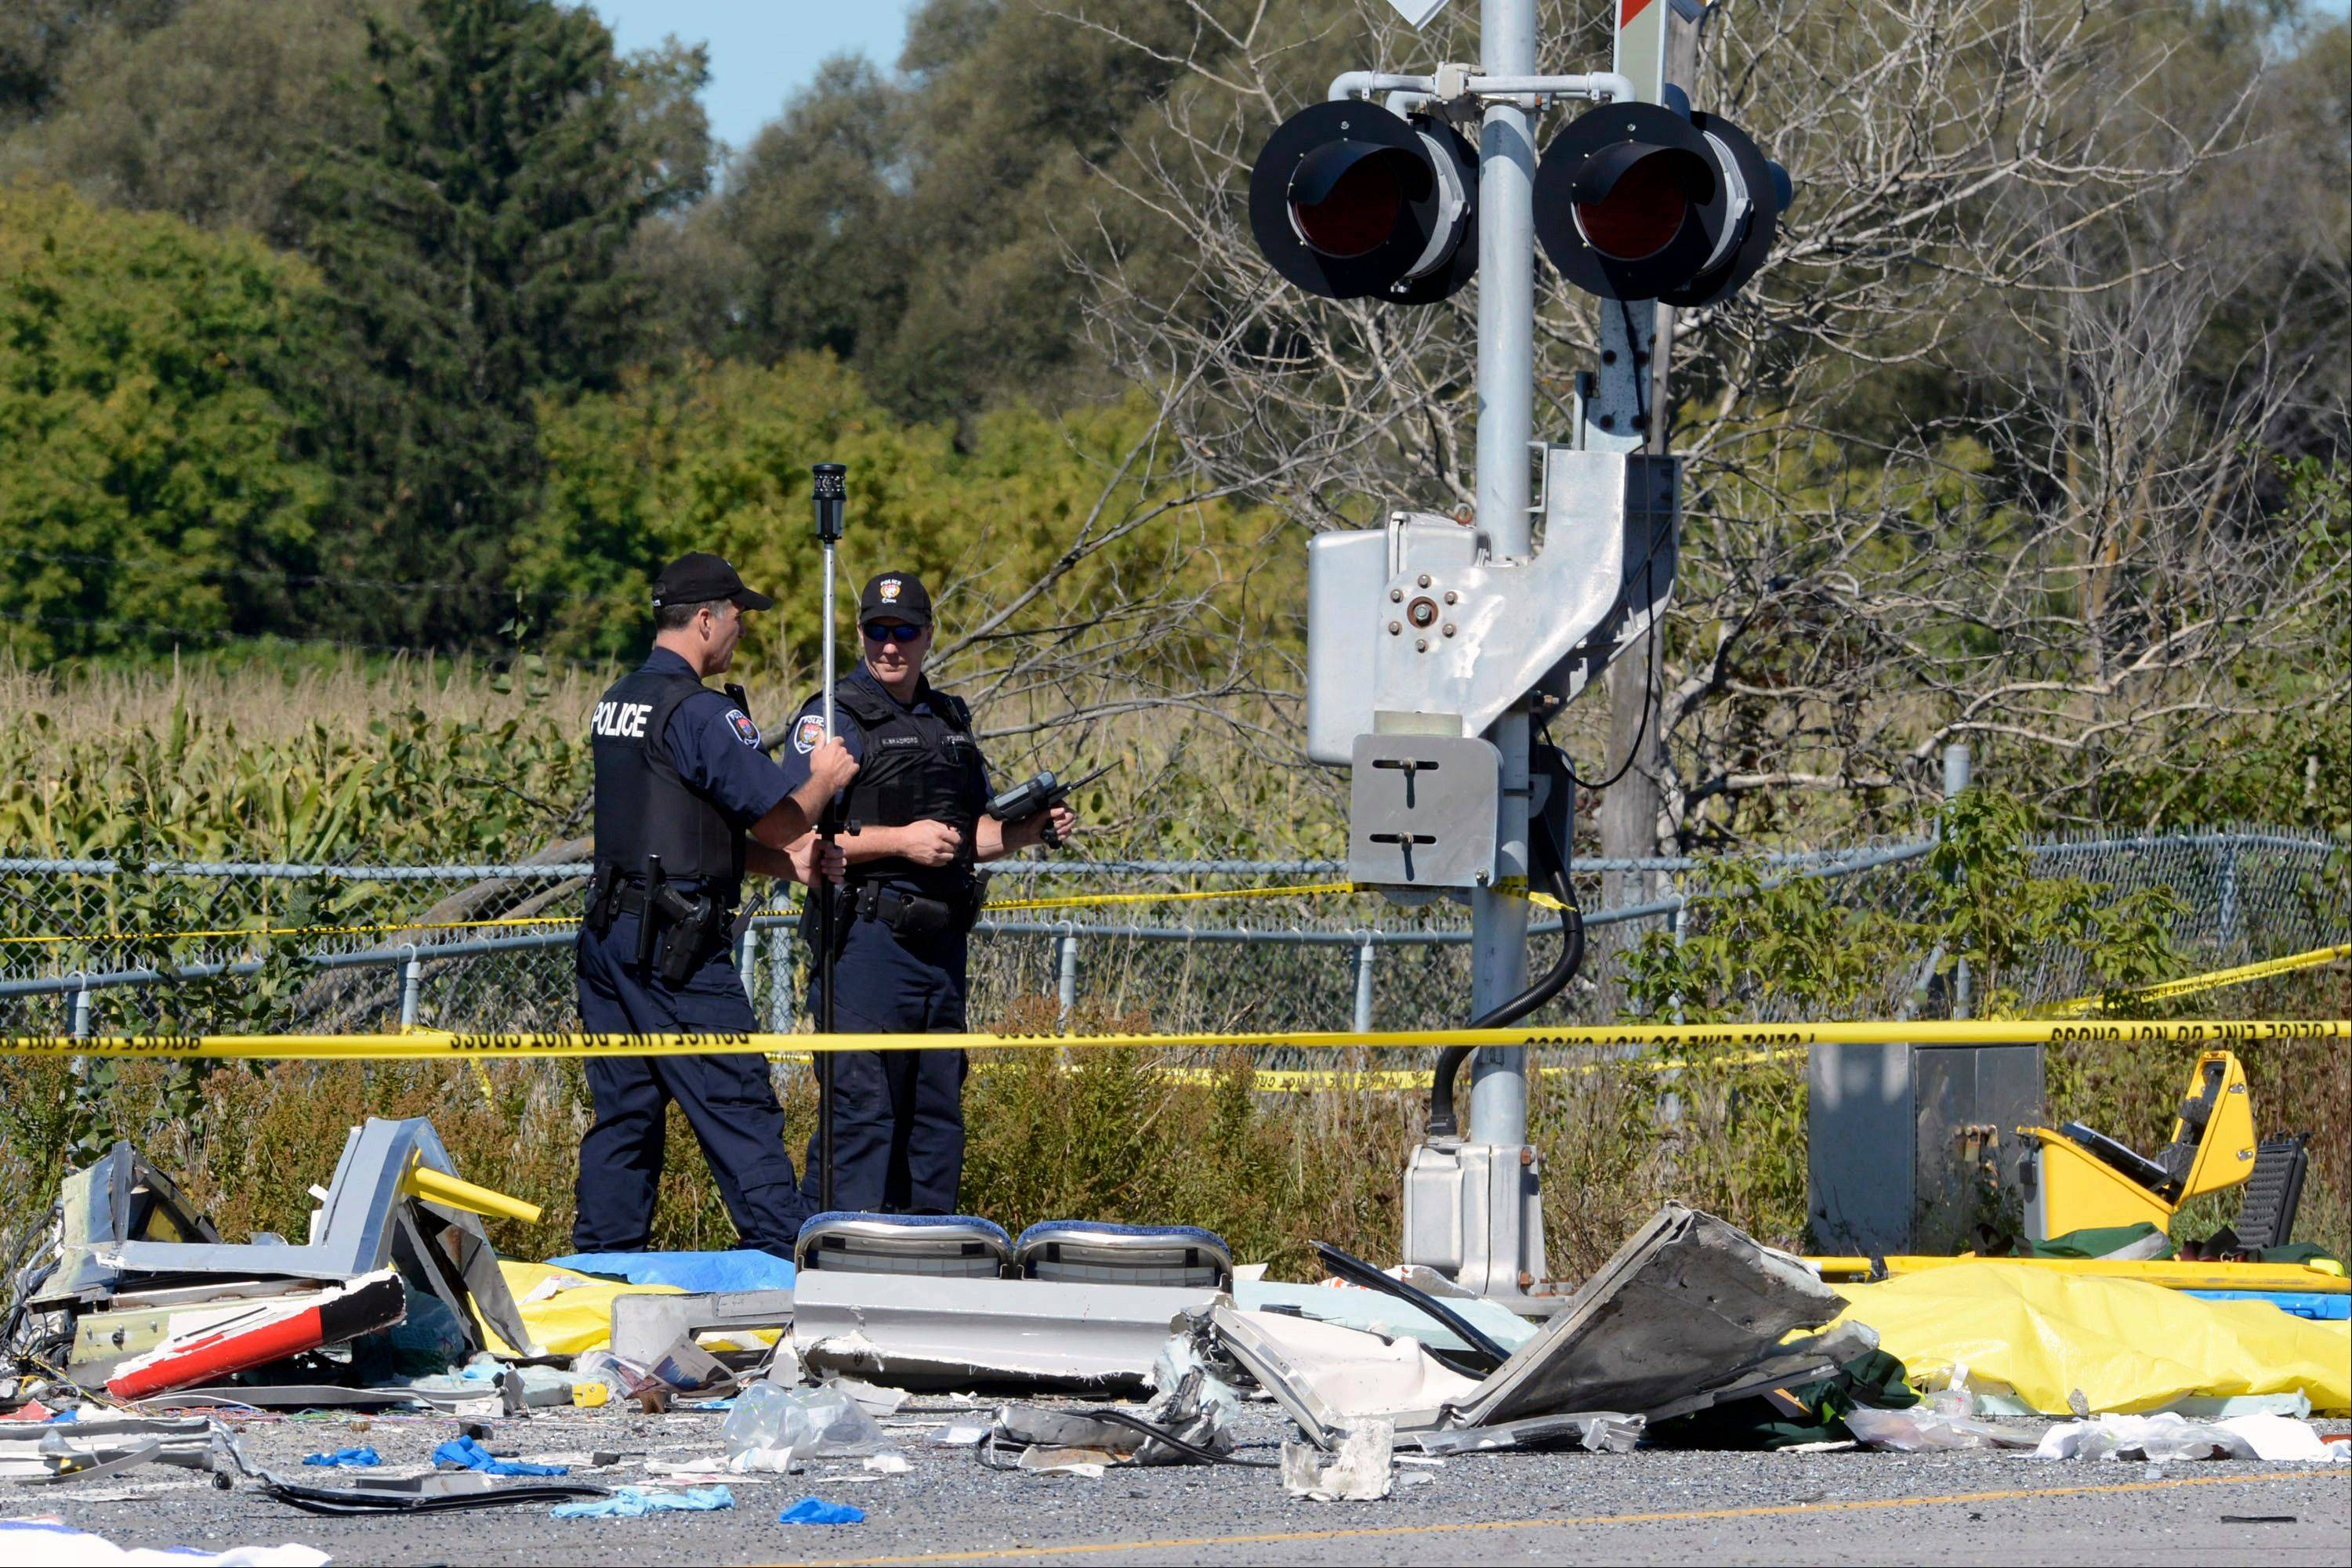 Police officers monitor the scene of a collision with a train and a city bus in Ottawa, Ontario, Wednesday, Sept. 18, 2013. An Ottawa Fire spokesman said there are ìmultiple fatalitiesî and a number of people injured from the bus.